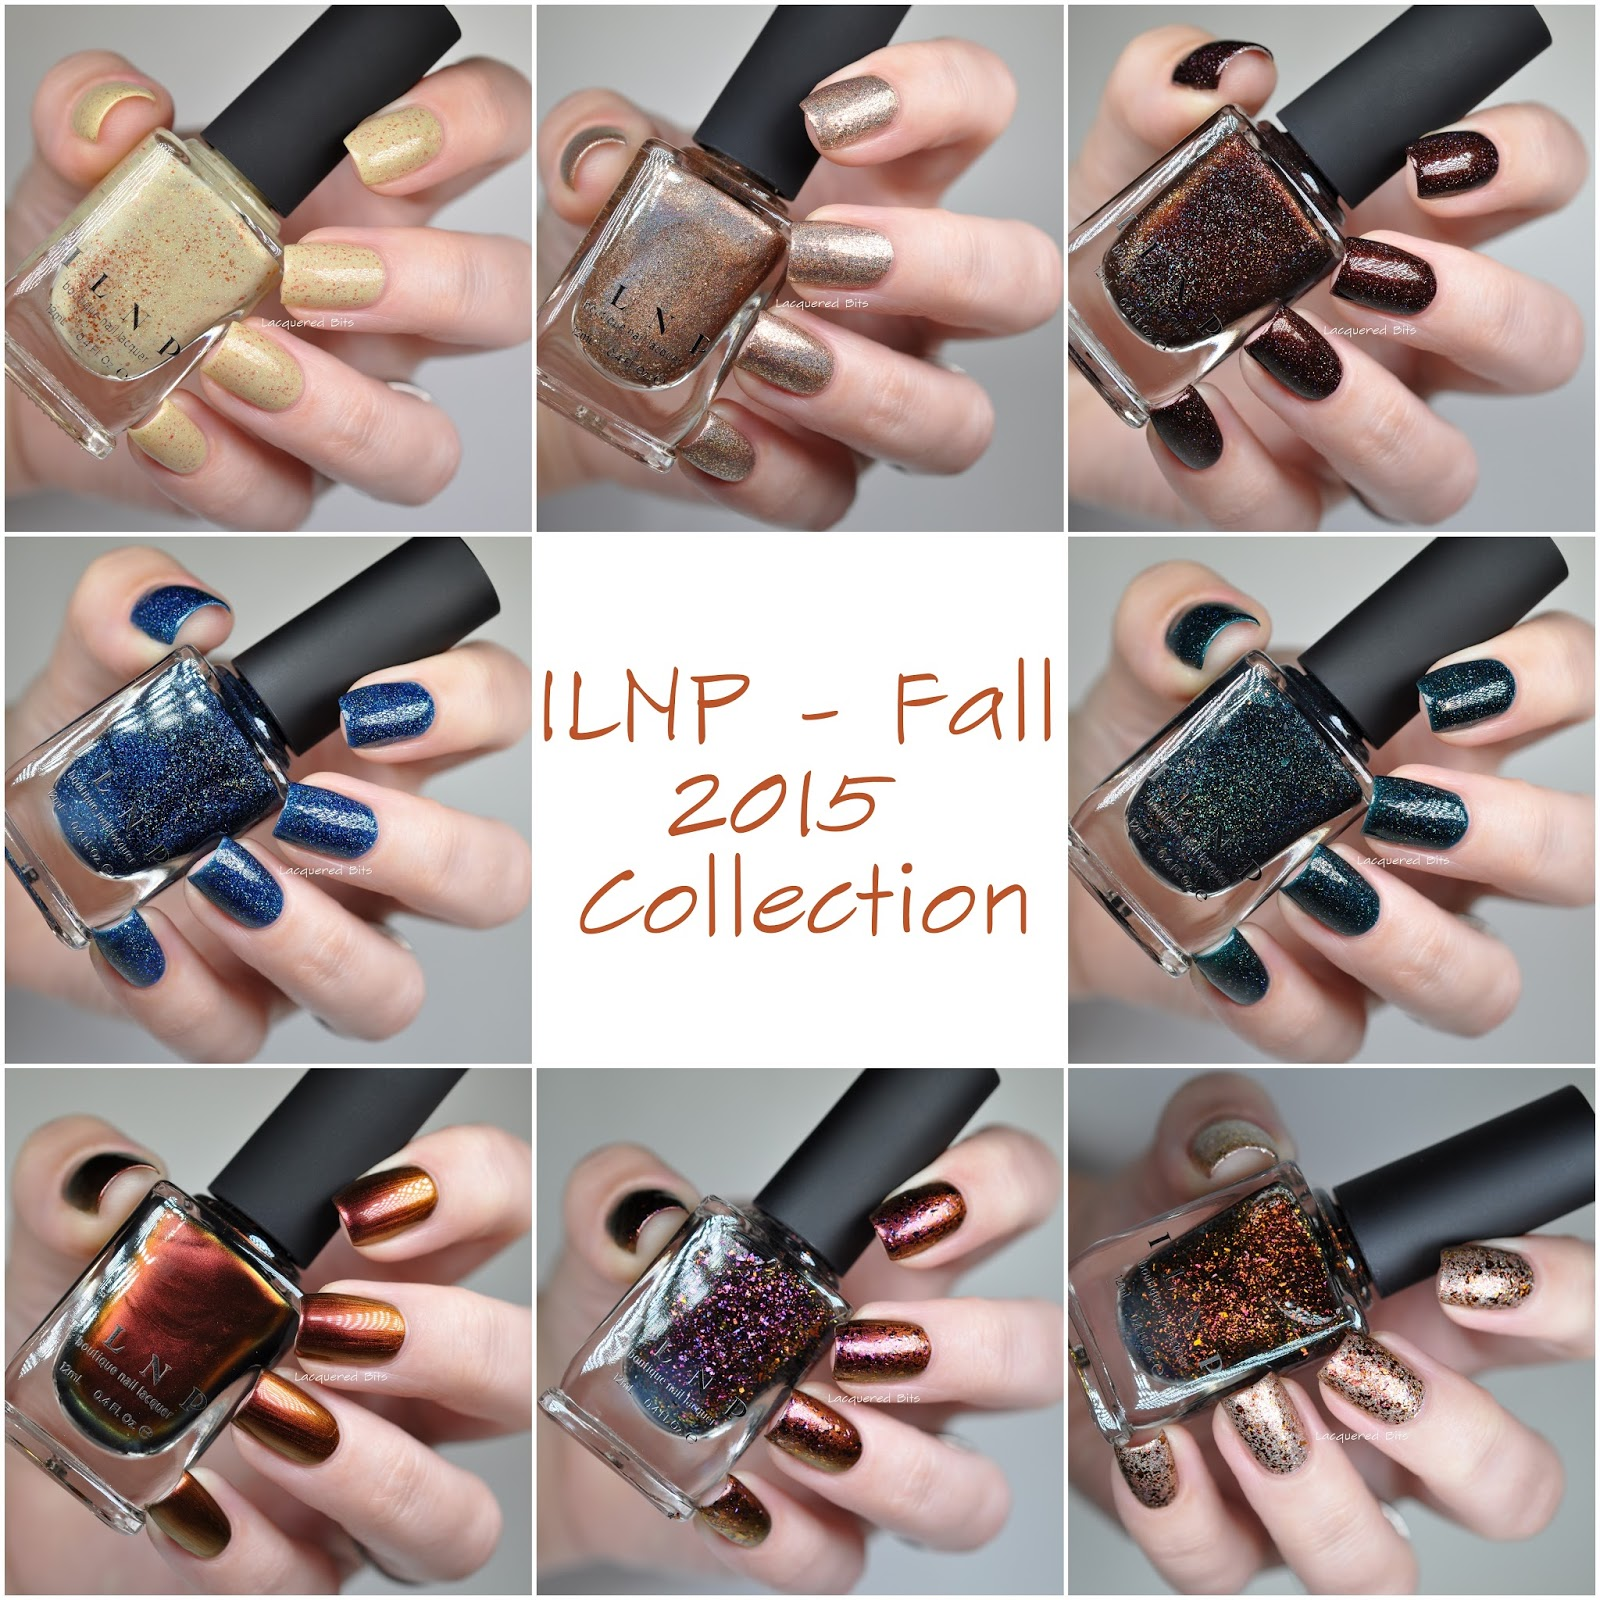 ILNP - Fall 2015 Collection - My Picks - Swatches & Review ...